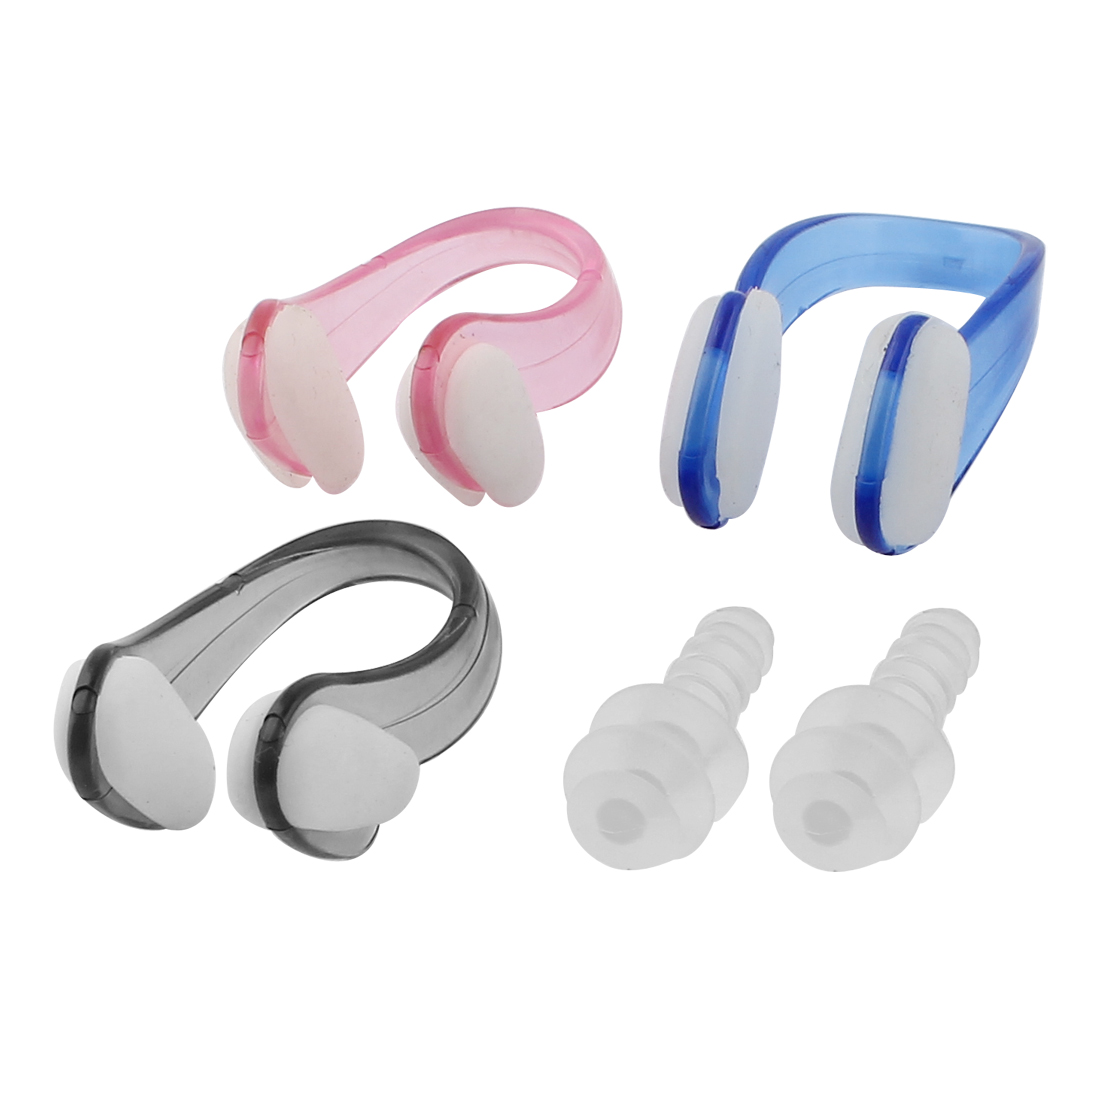 Unique Bargains 3Pcs Soft Silicone Swimming Nose Clip + Ear Plugs Combo Set For Adult Youth